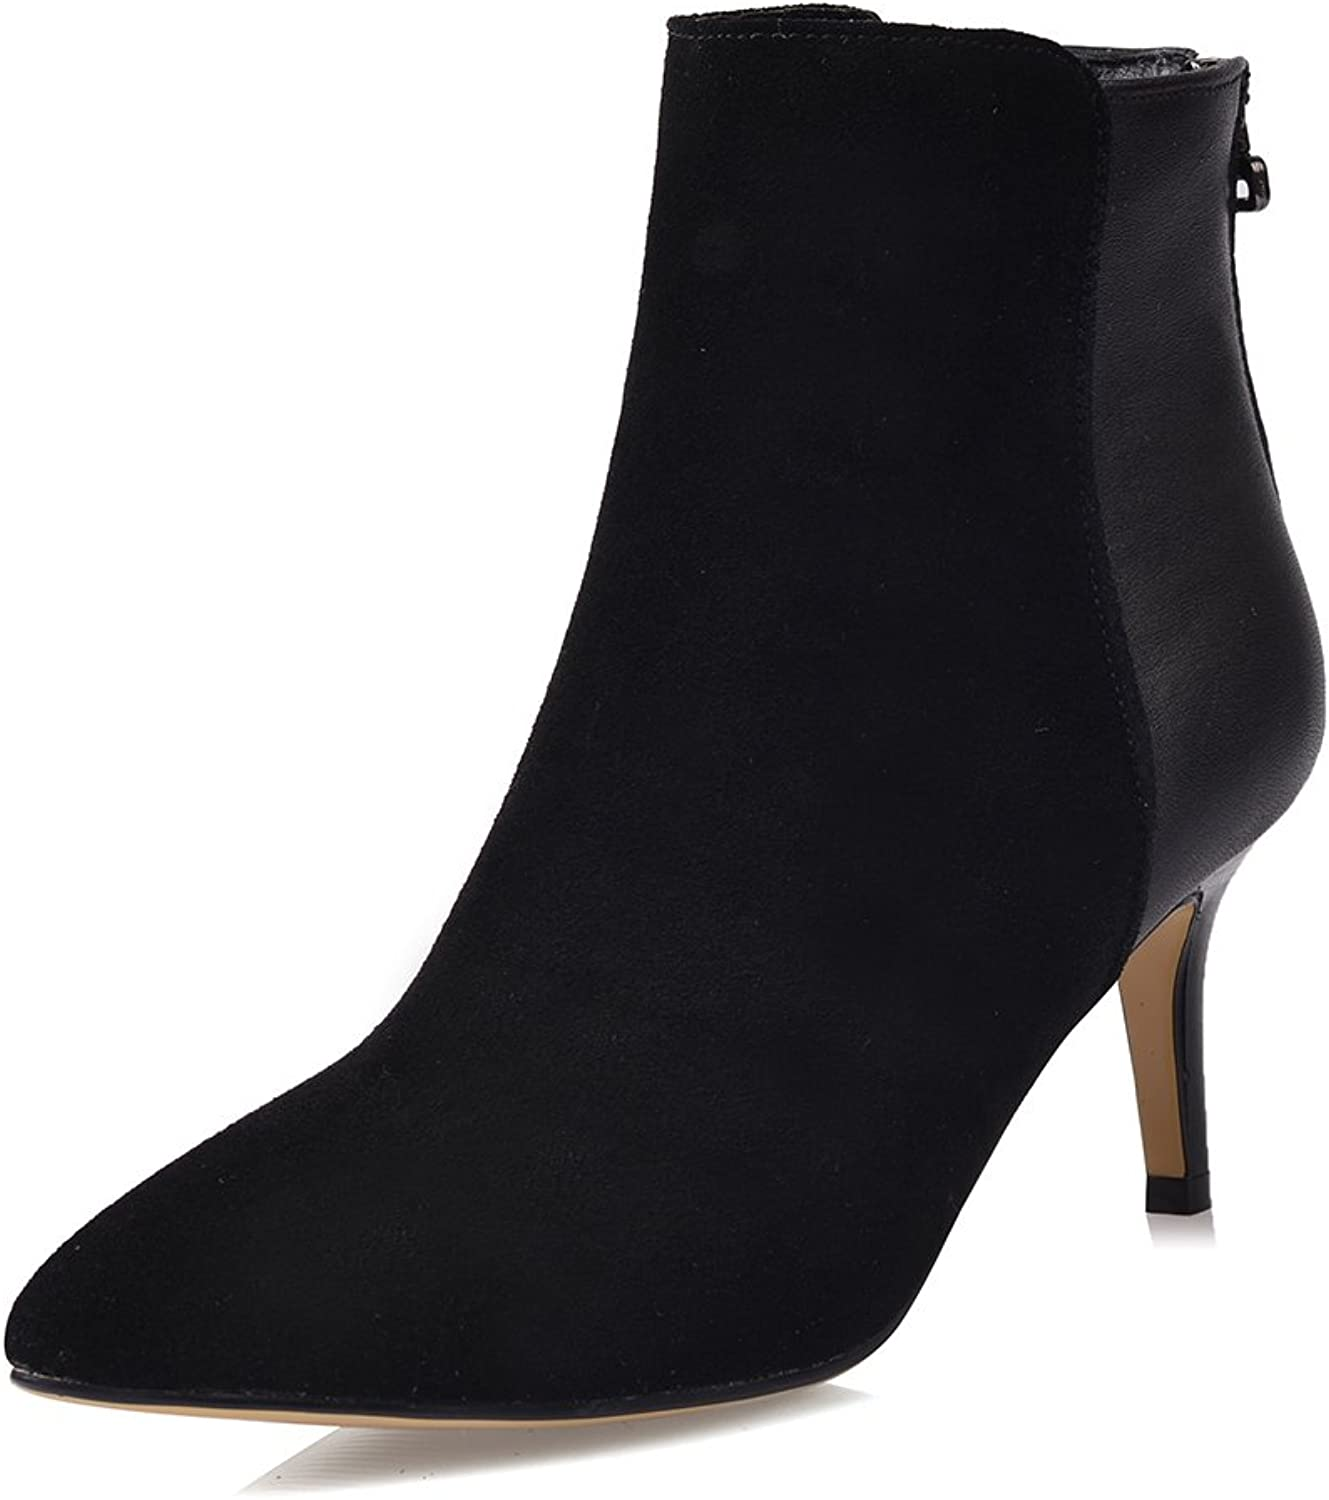 Cuckoo Leather Mid Heel Ankle Boot Rubber sole Bootie